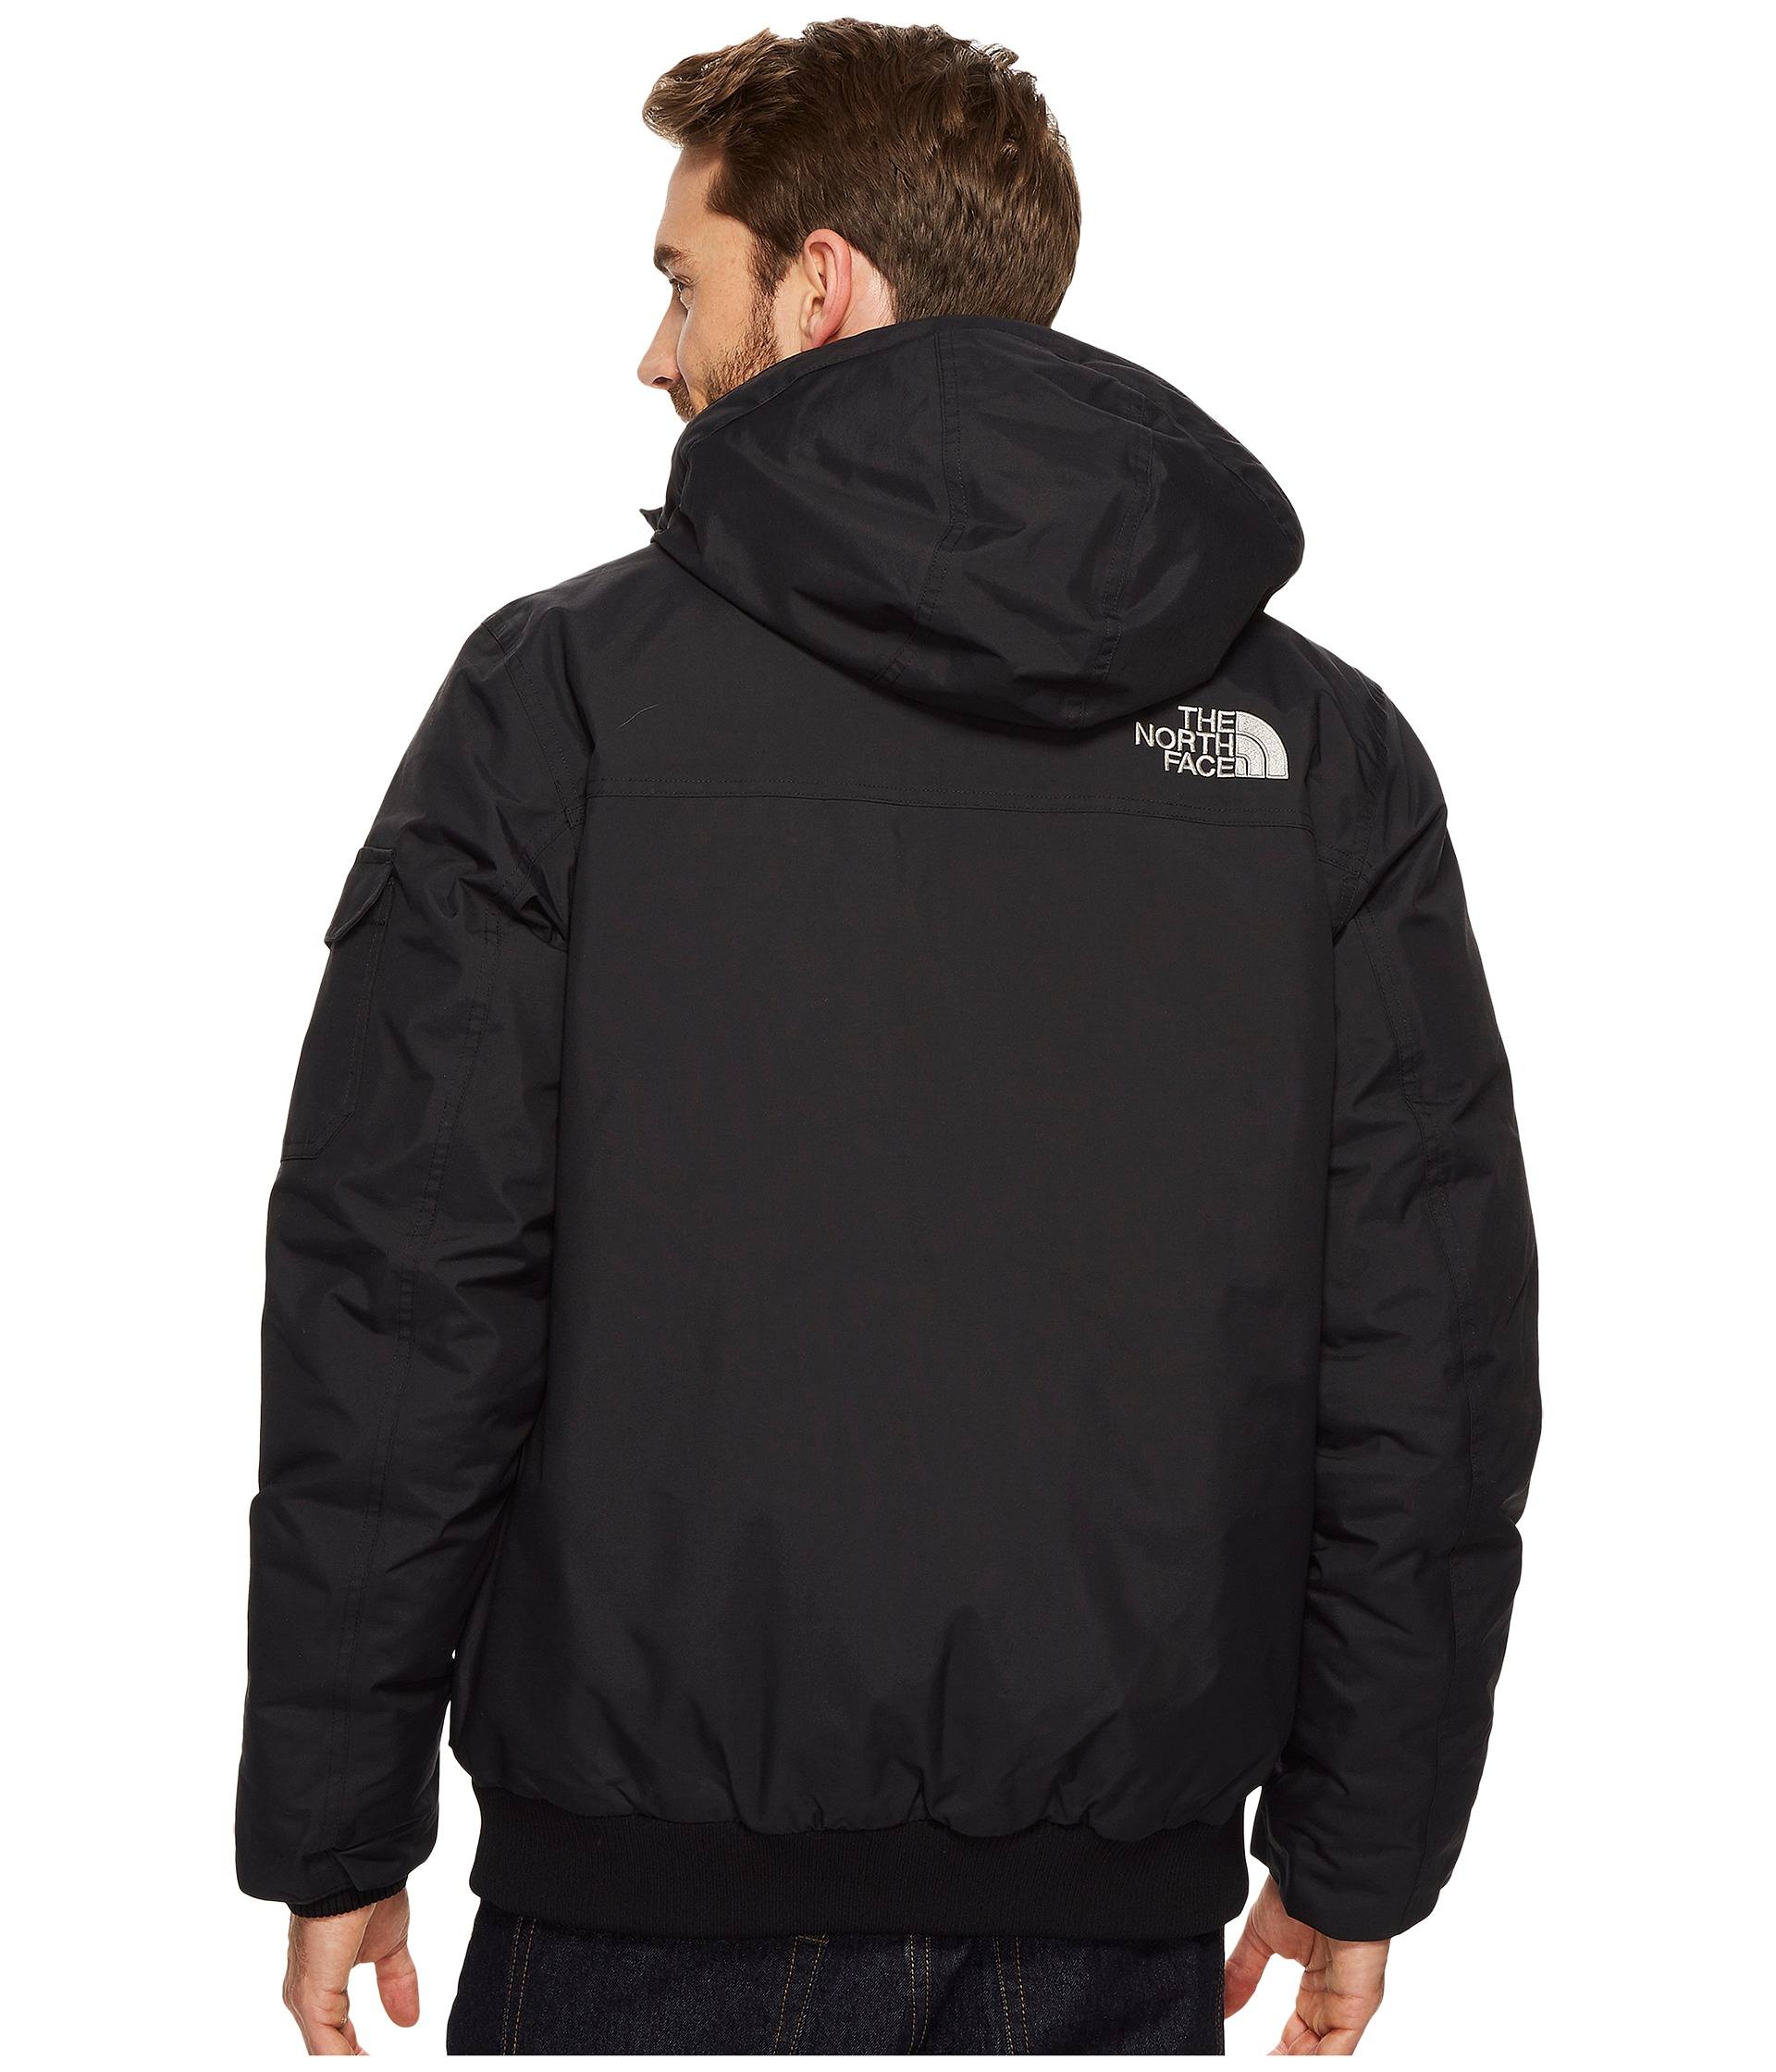 The North Face Gotham Jacket Iii At Zappos Com